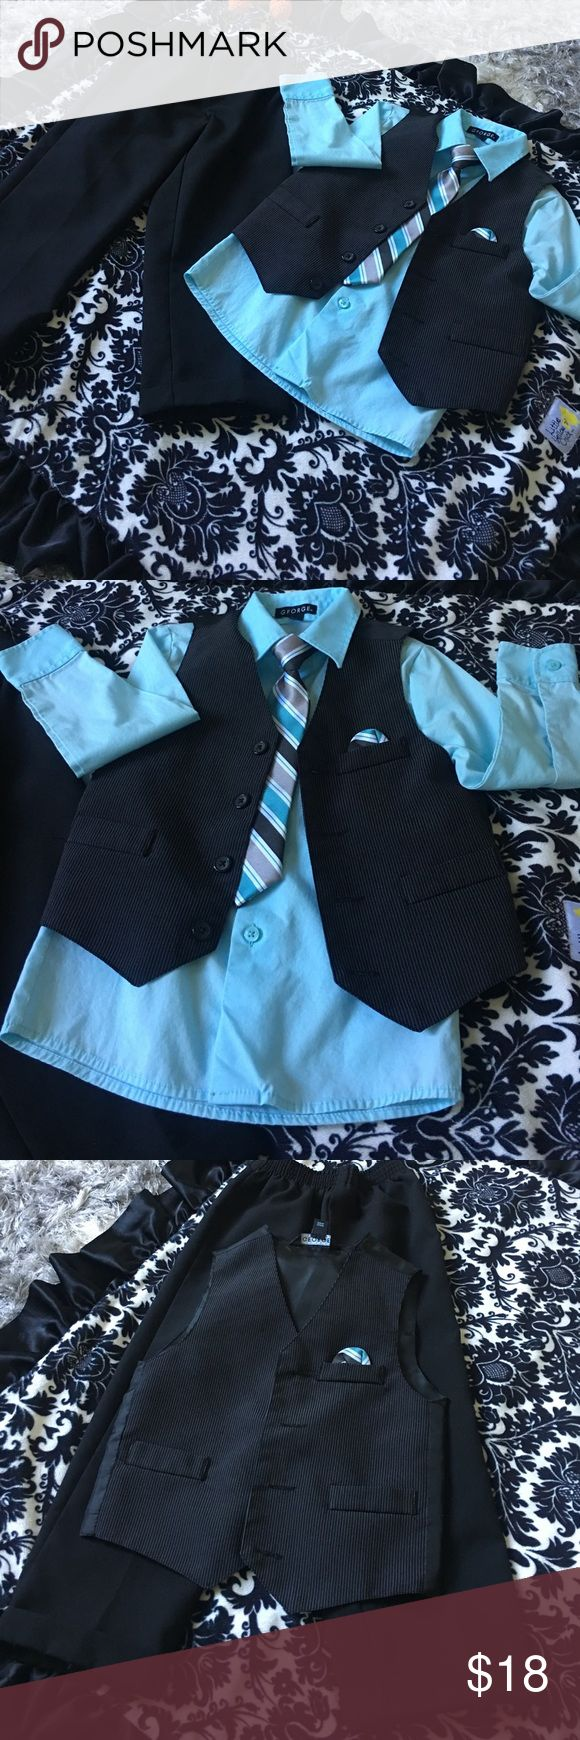 4piece suit This is a George 4 piece suit! Slight piling and wear along bottom cuff of boys pants and slight ring around collar noted in pics 4 & 7. George Matching Sets